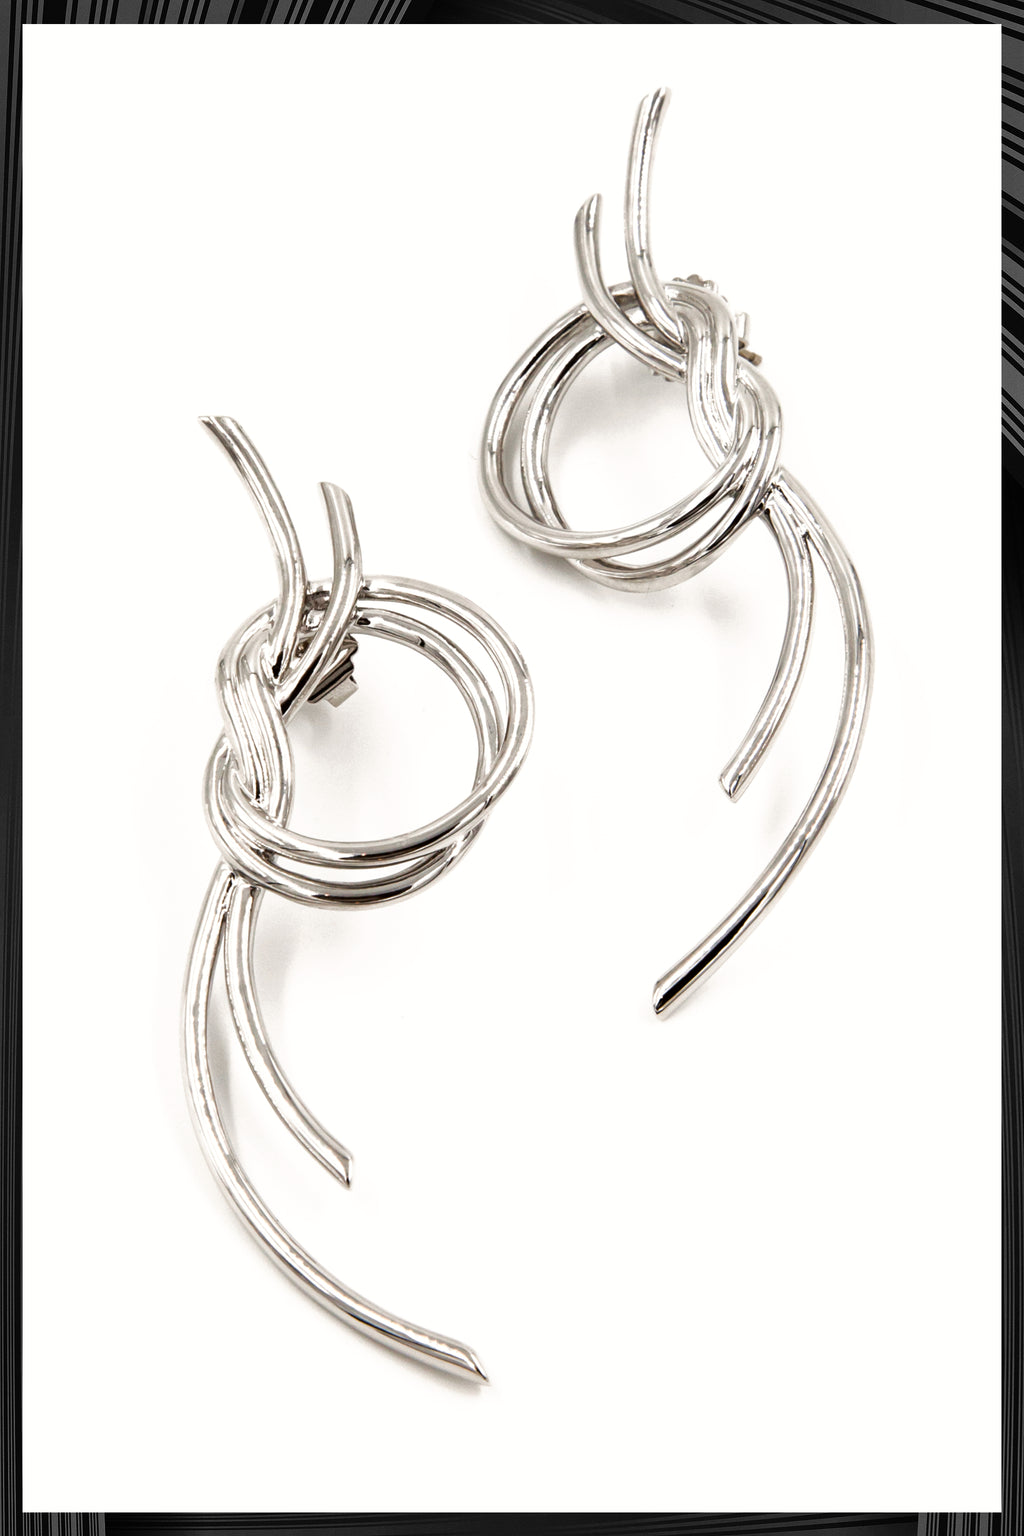 Venus Large Knot Earrings | Free Delivery - Quick Shipping